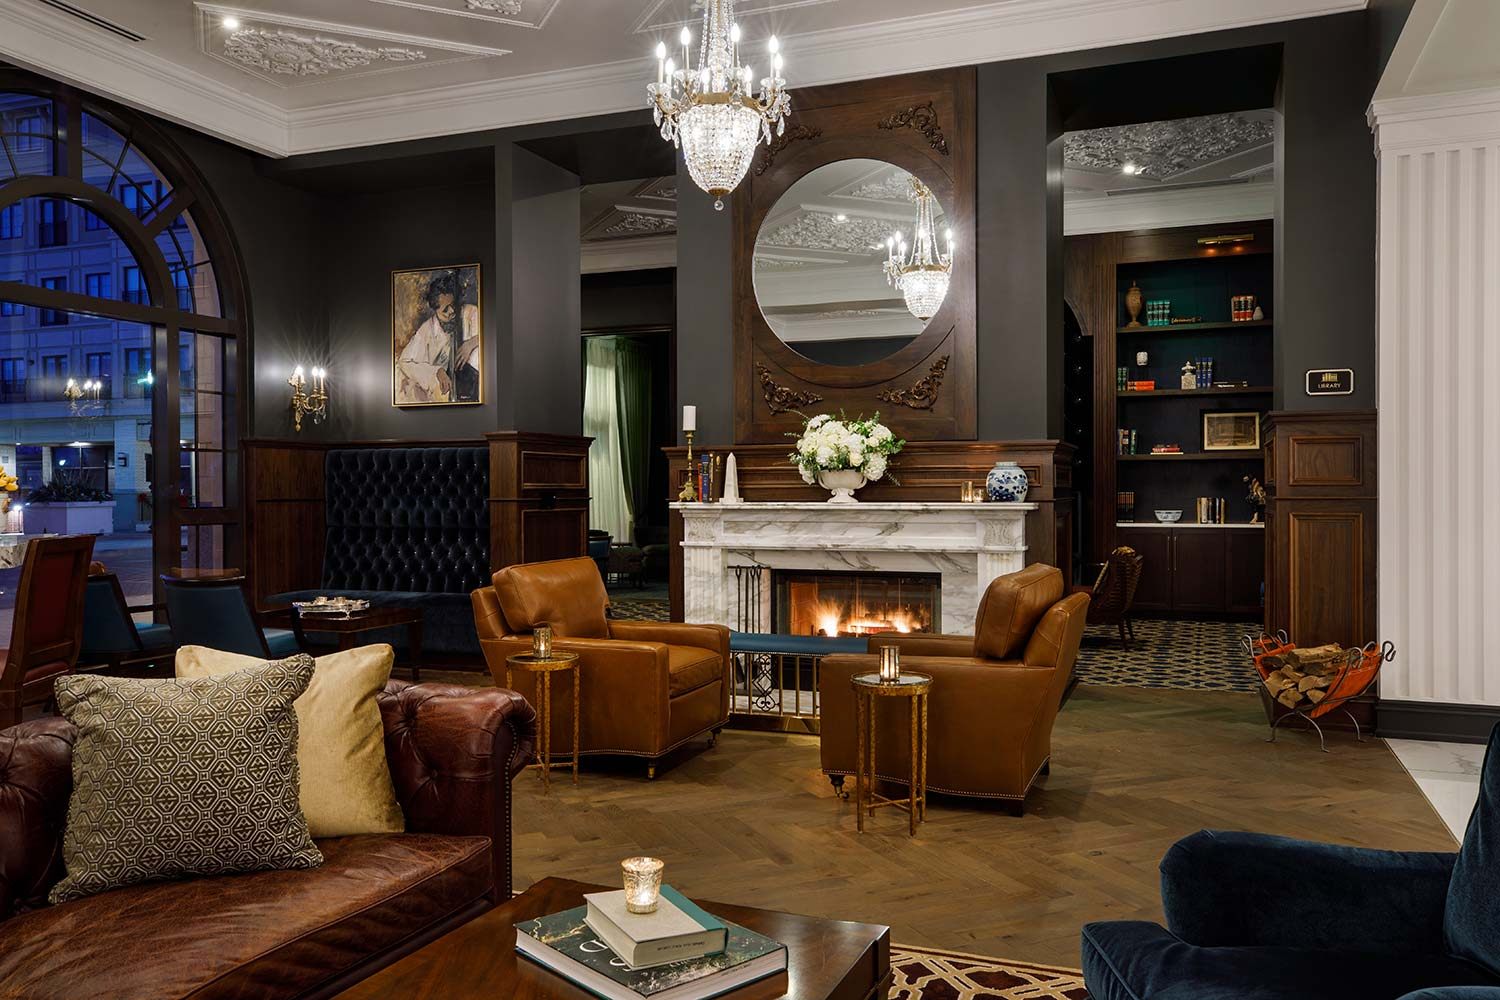 Adagio Lounge seating area with large ceiling chandelier